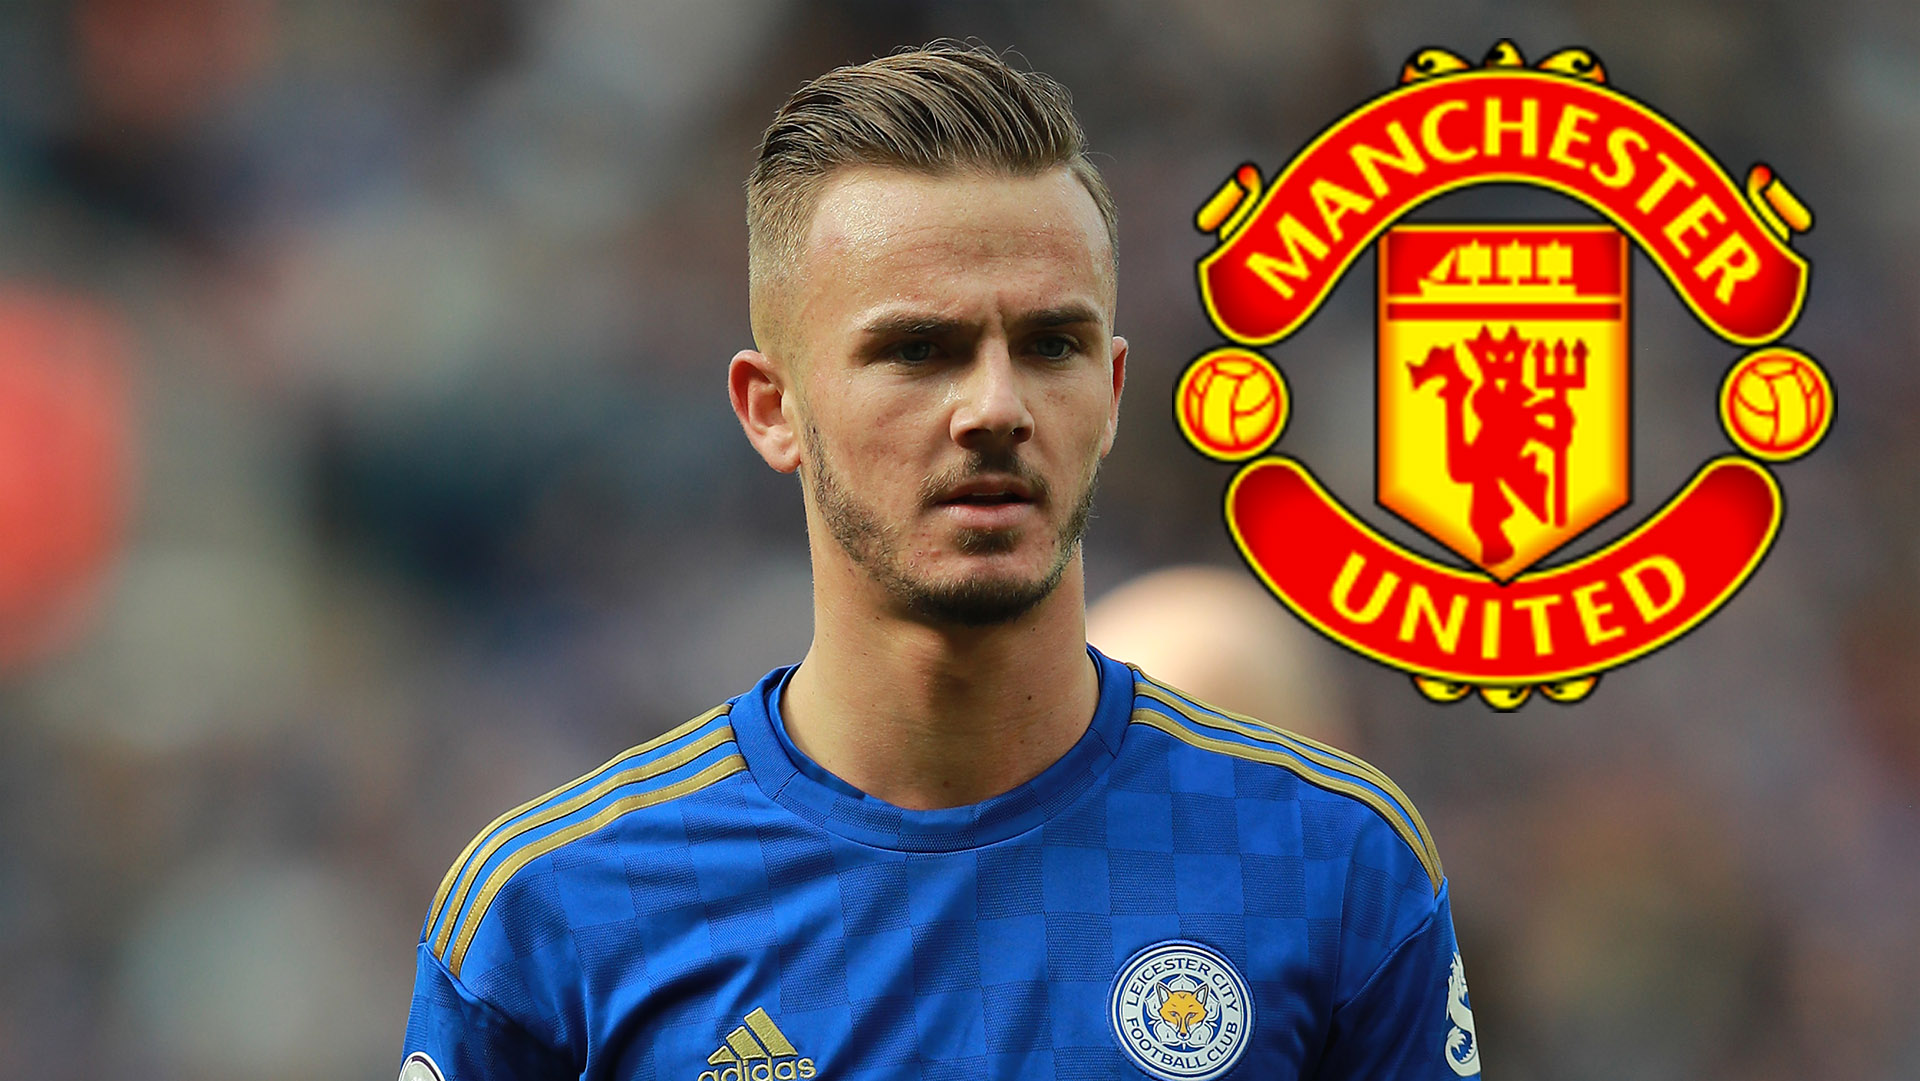 Man Utd target Maddison could be sold if Leicester's price tag met, concedes Rodgers